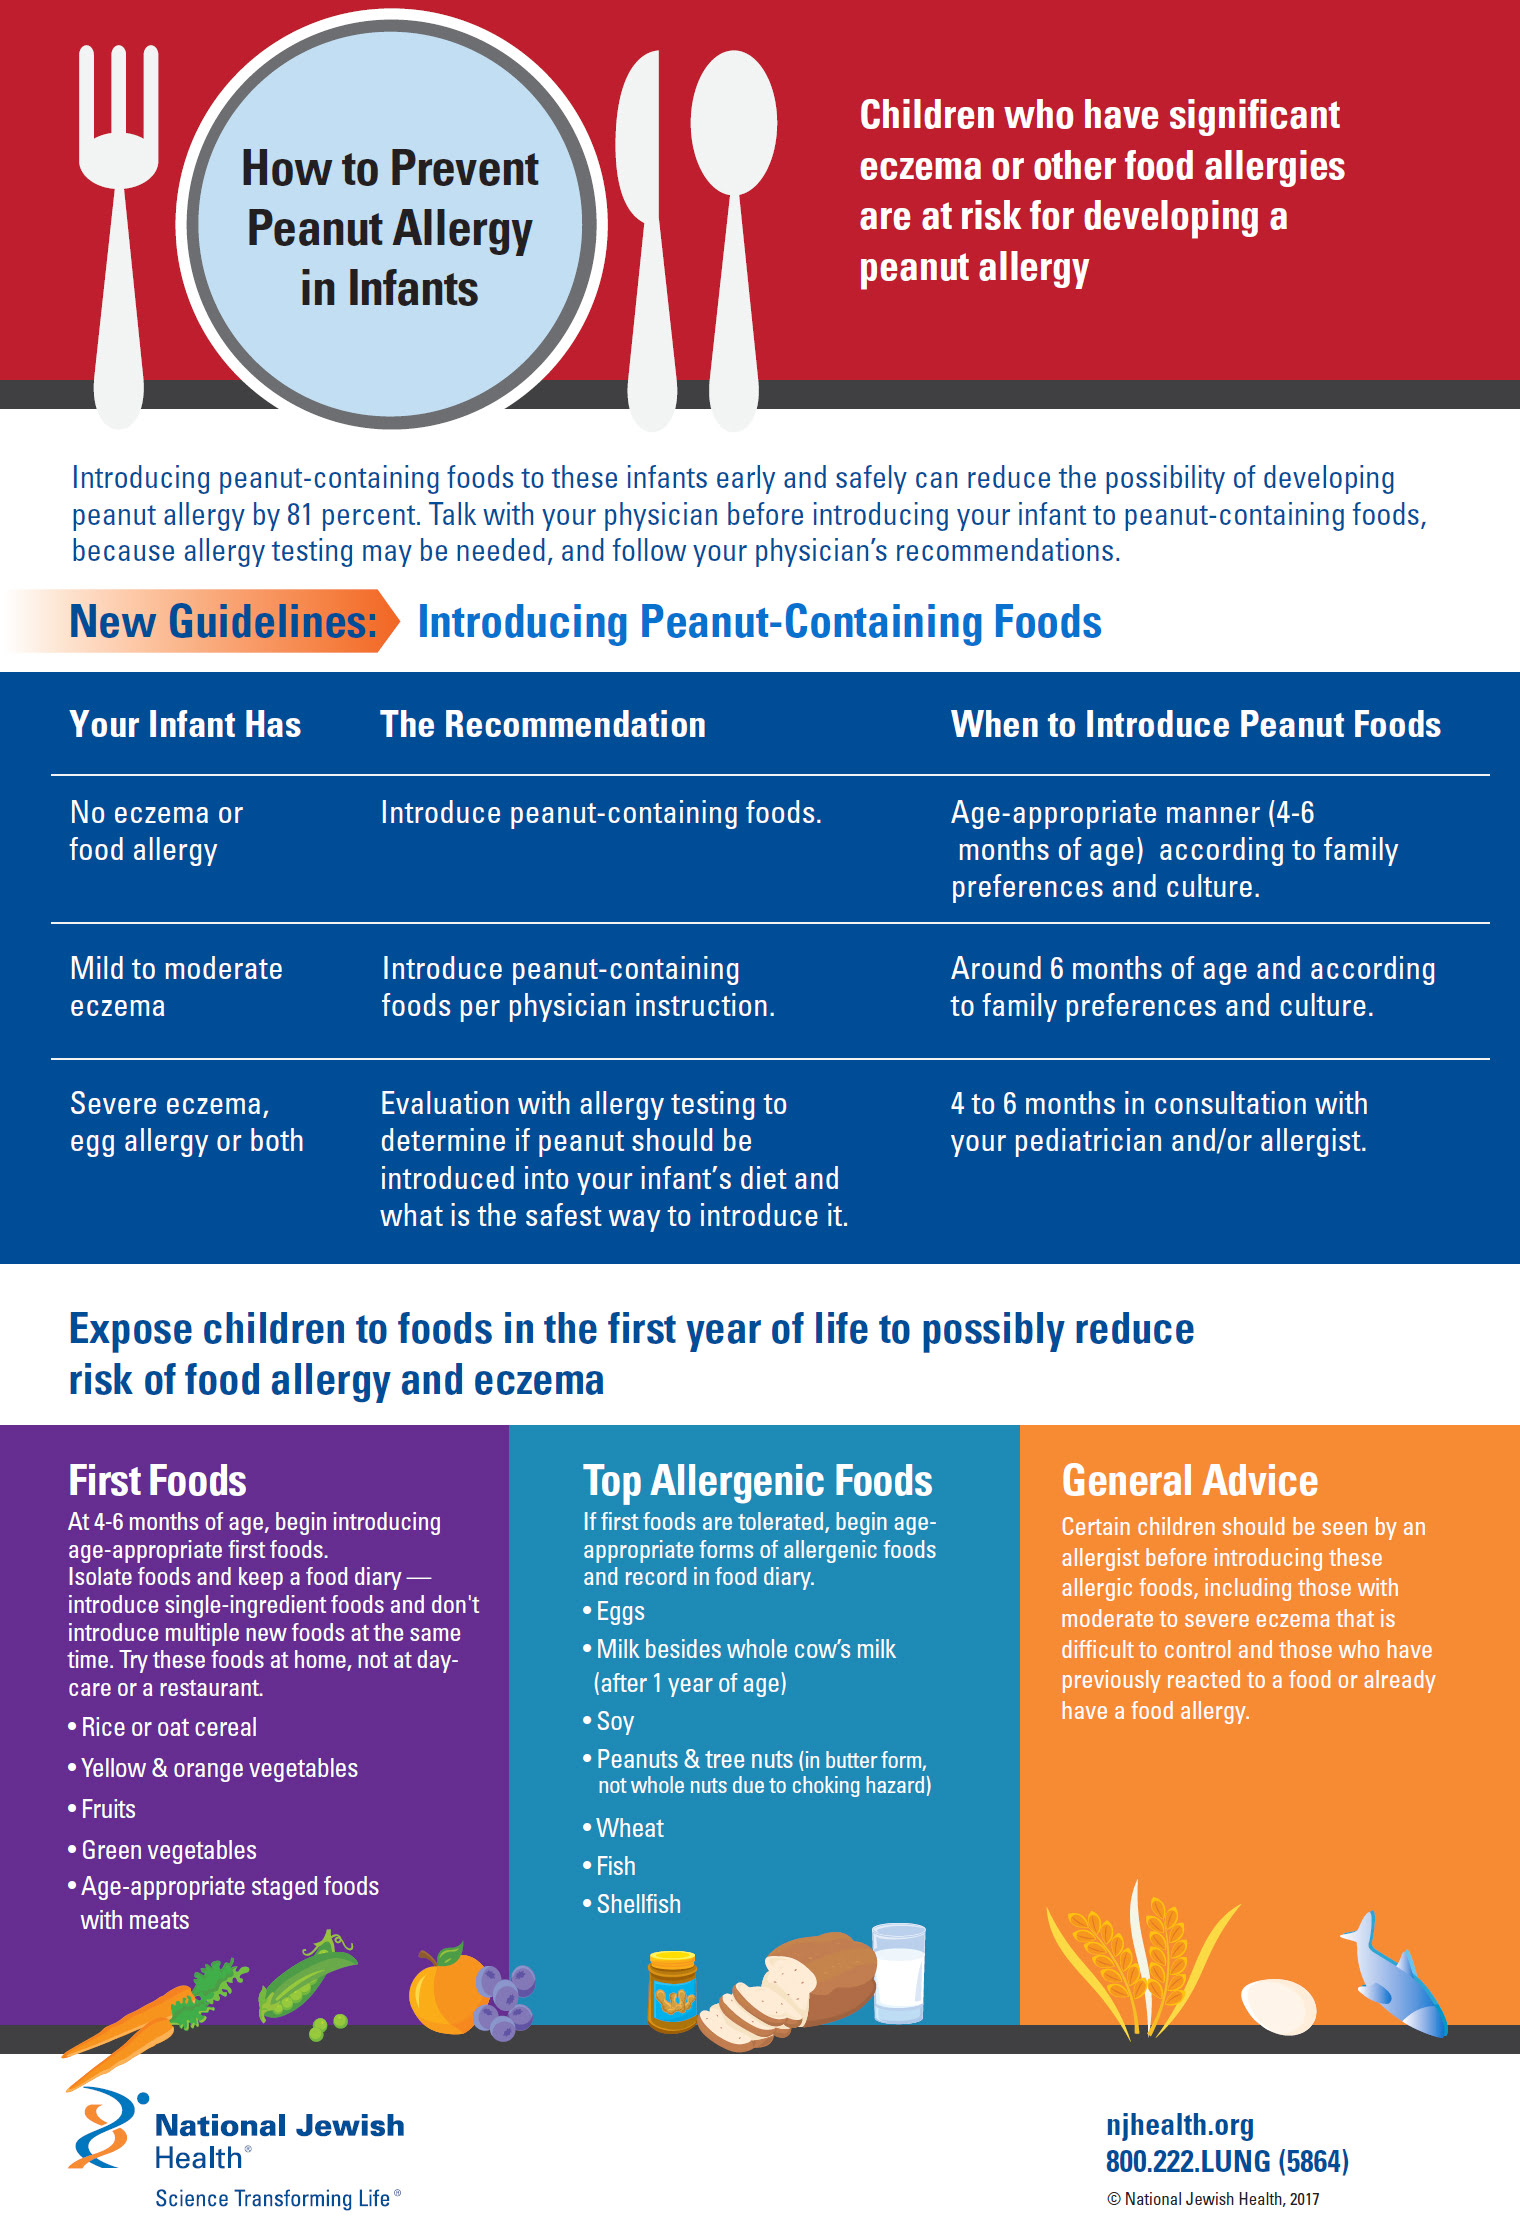 How to Prevent Peanut Allergy in Infants Infographic